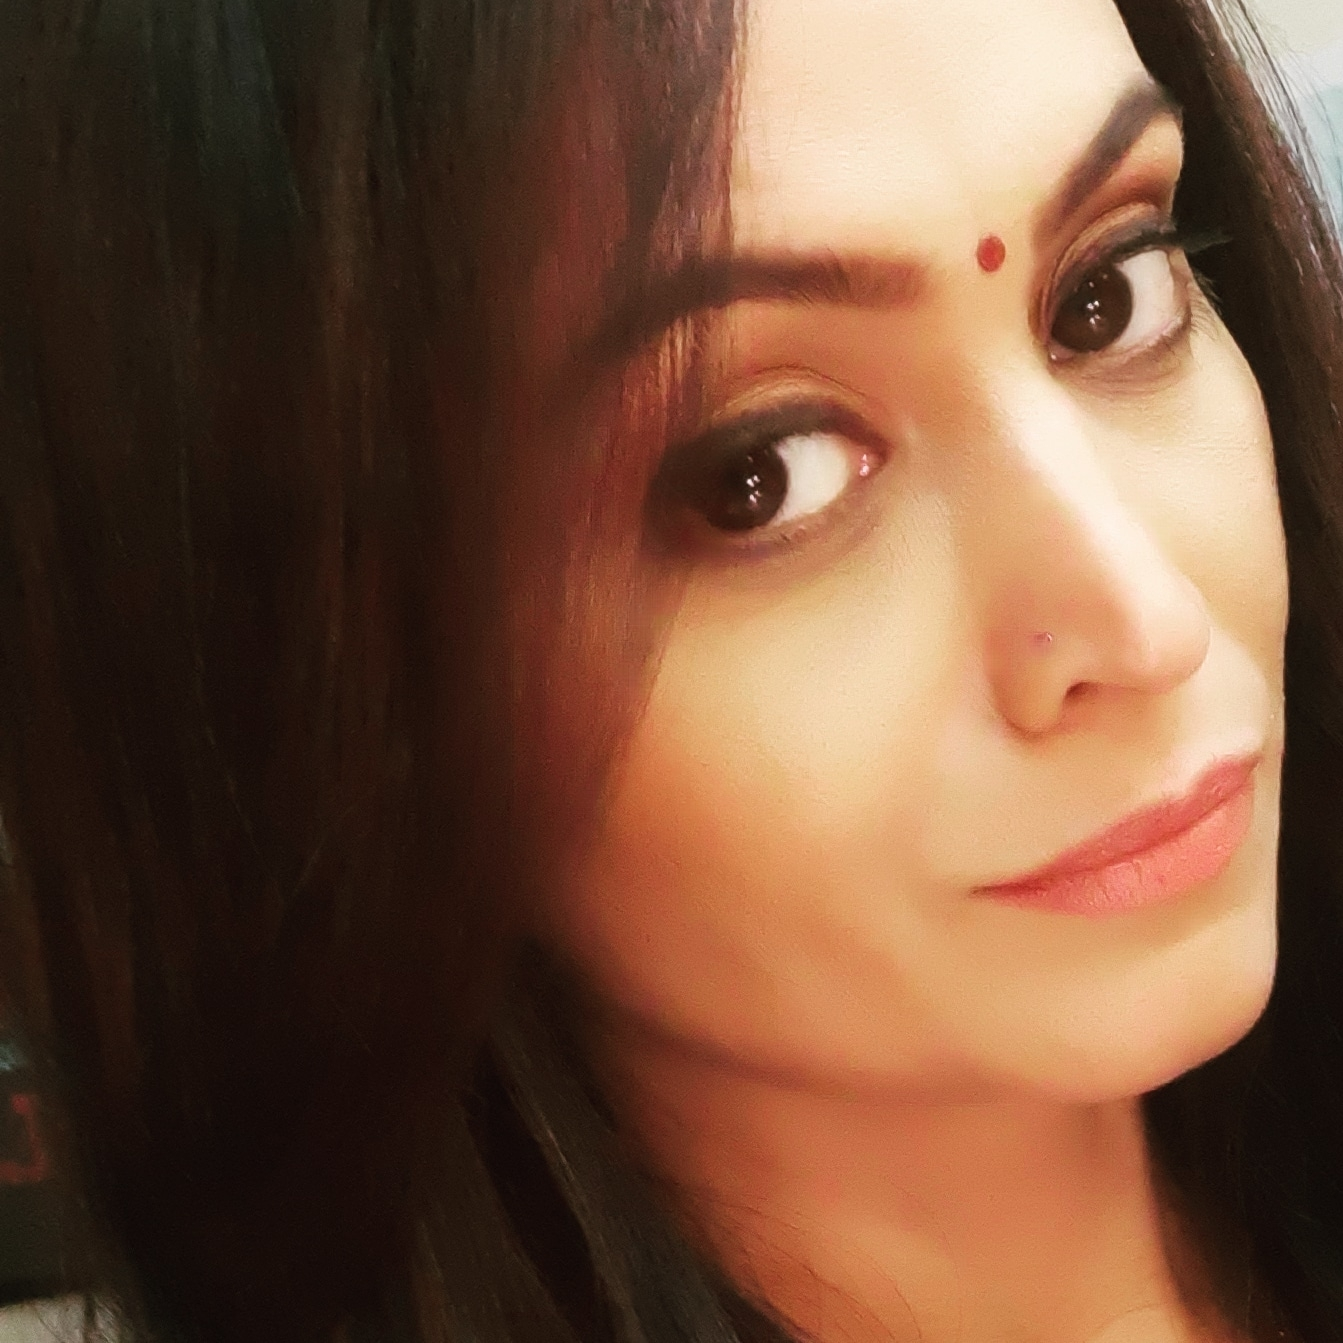 'Naagin 5' actress Shivani Gosain won't play 'moving property in a crowd'